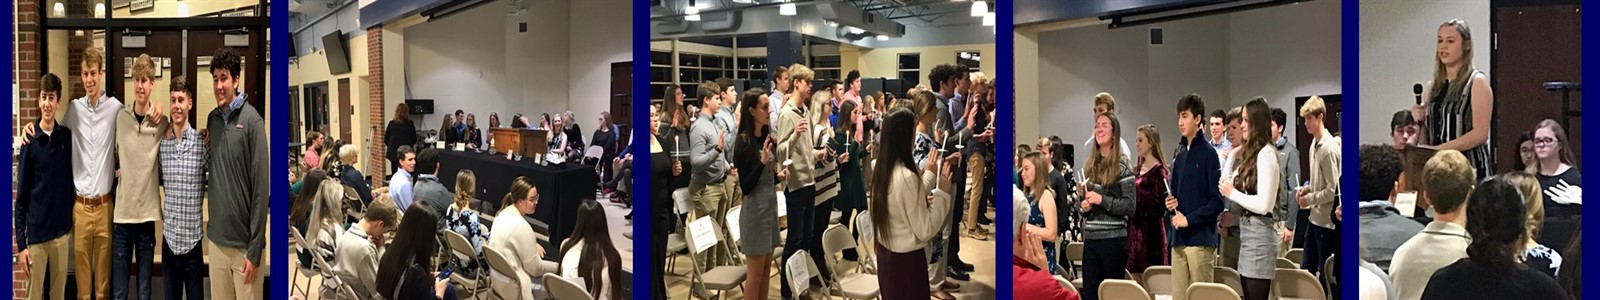 SCHS National Honor Society Induction